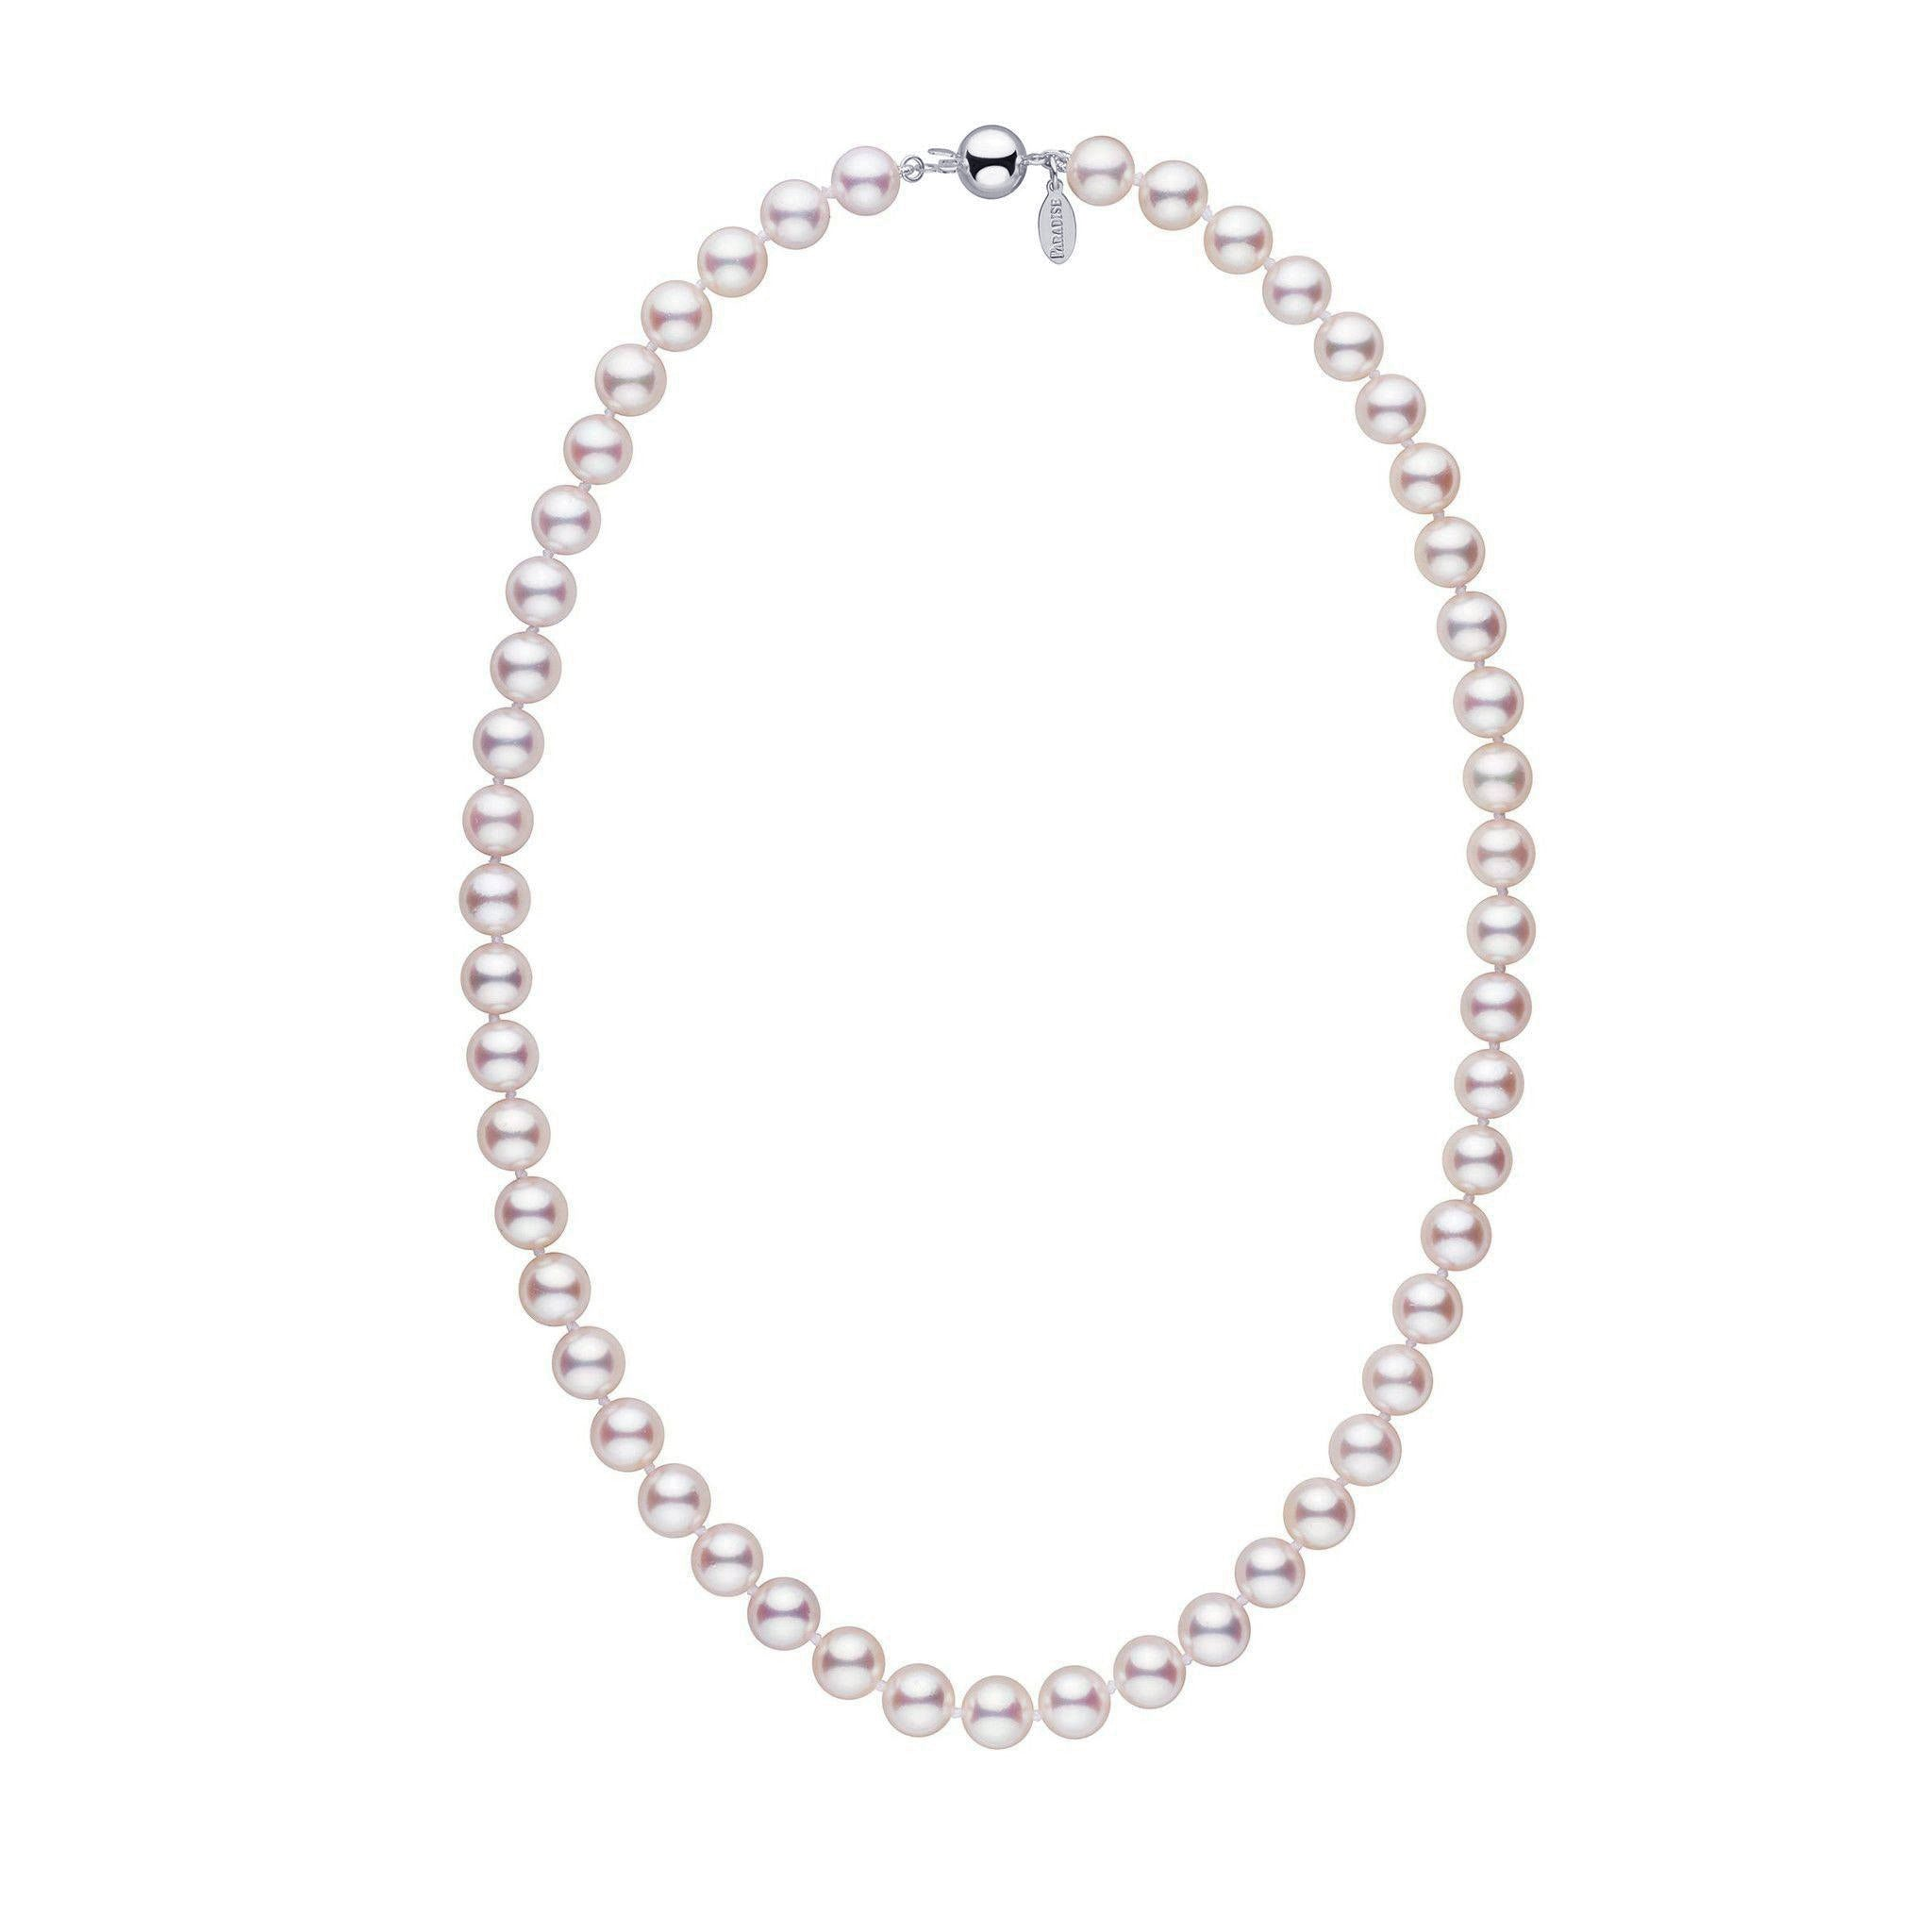 8.0-8.5 mm 18 inch White Hanadama Akoya Pearl Necklace